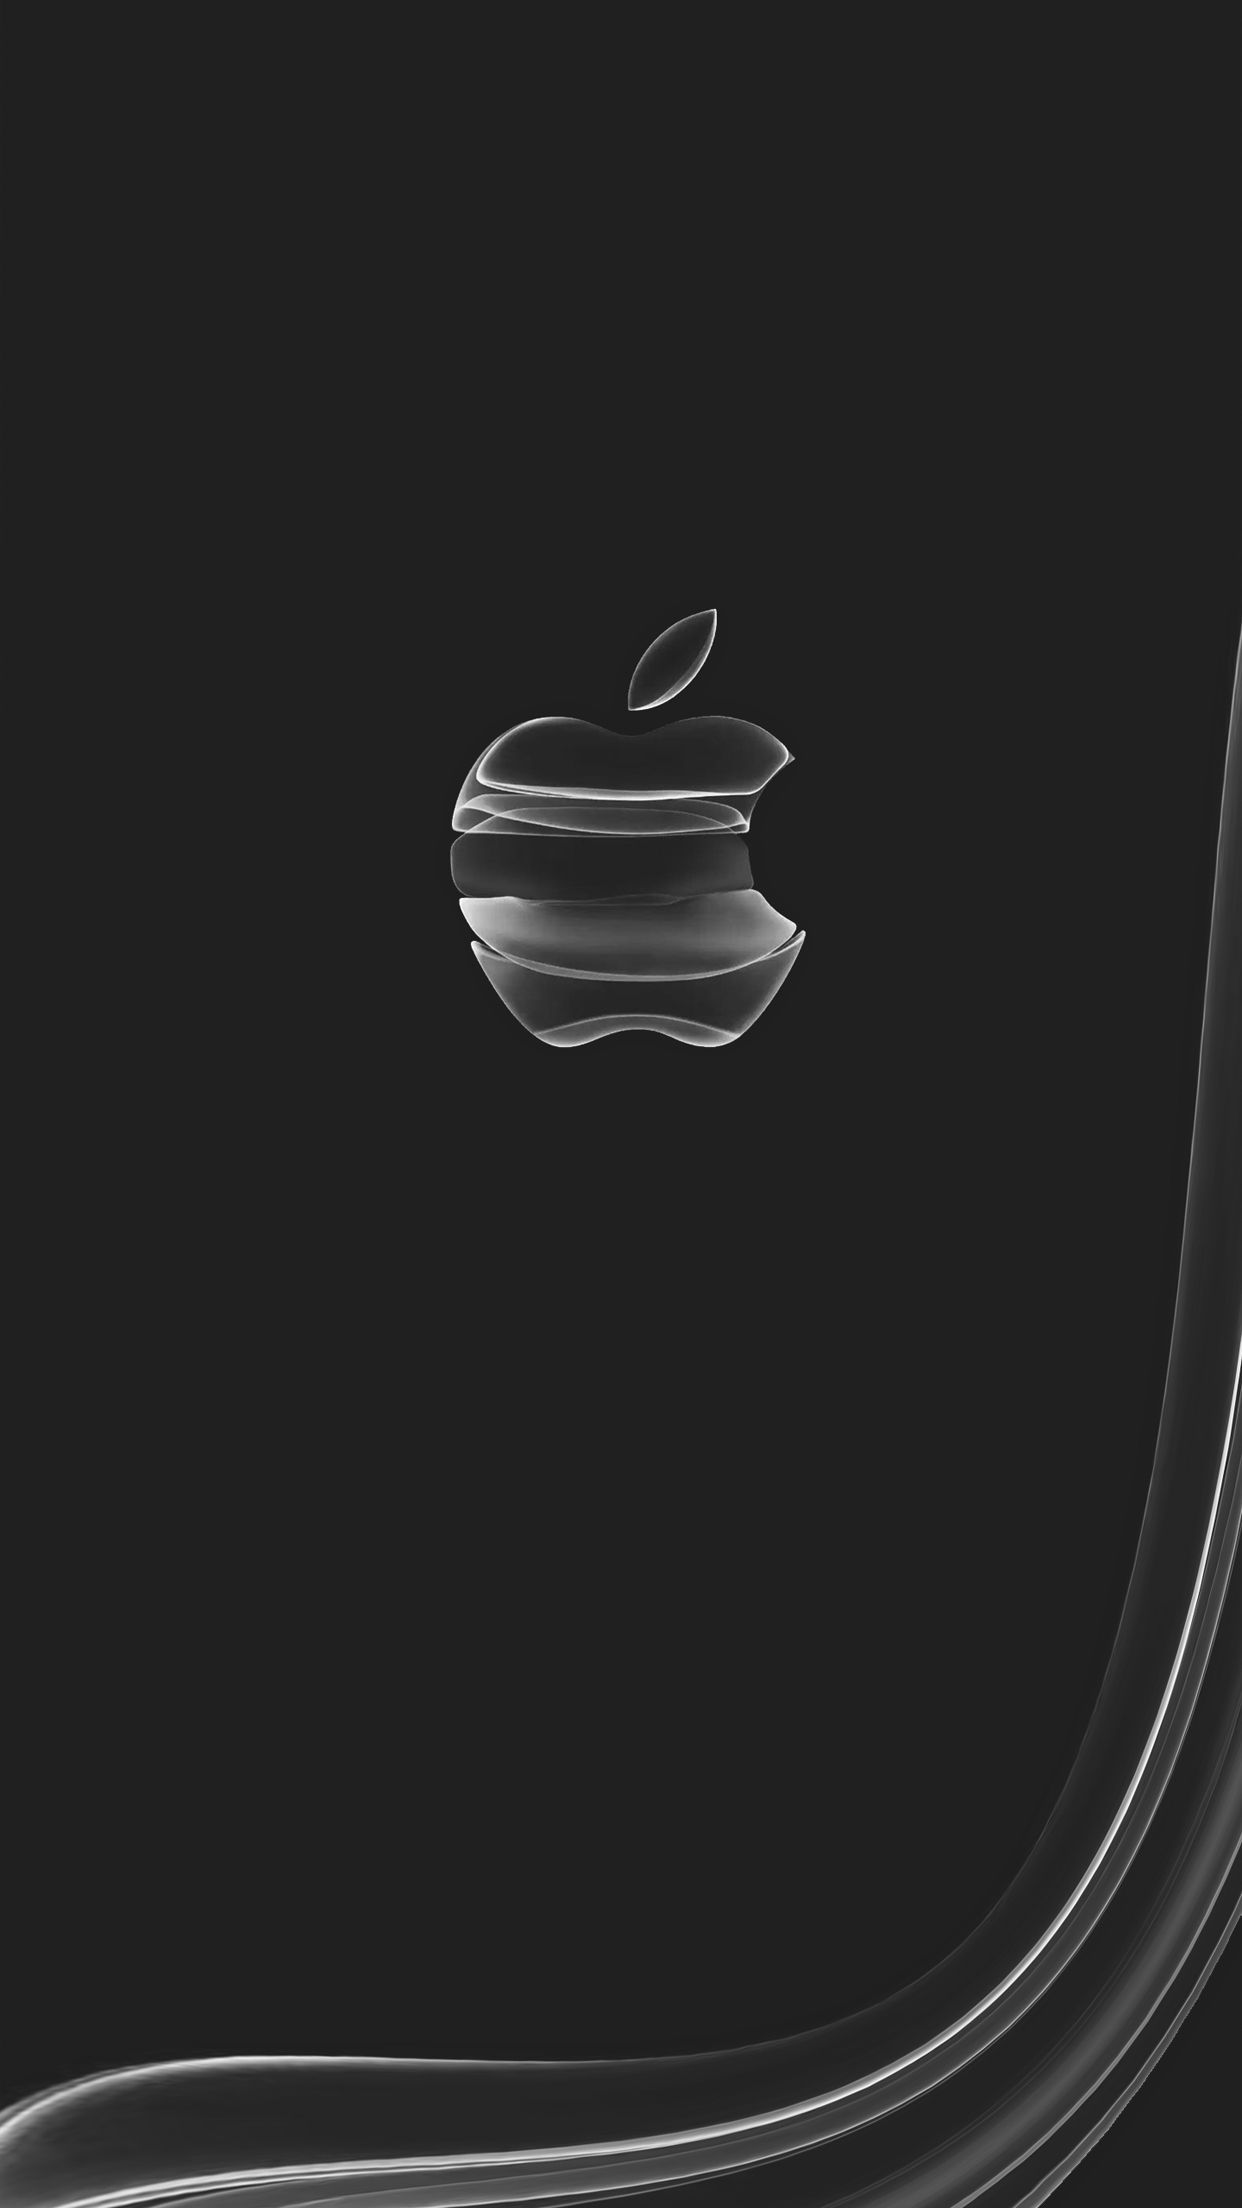 Iphone 11 Pro Simple Black Wallpapers Wallpaper Cave